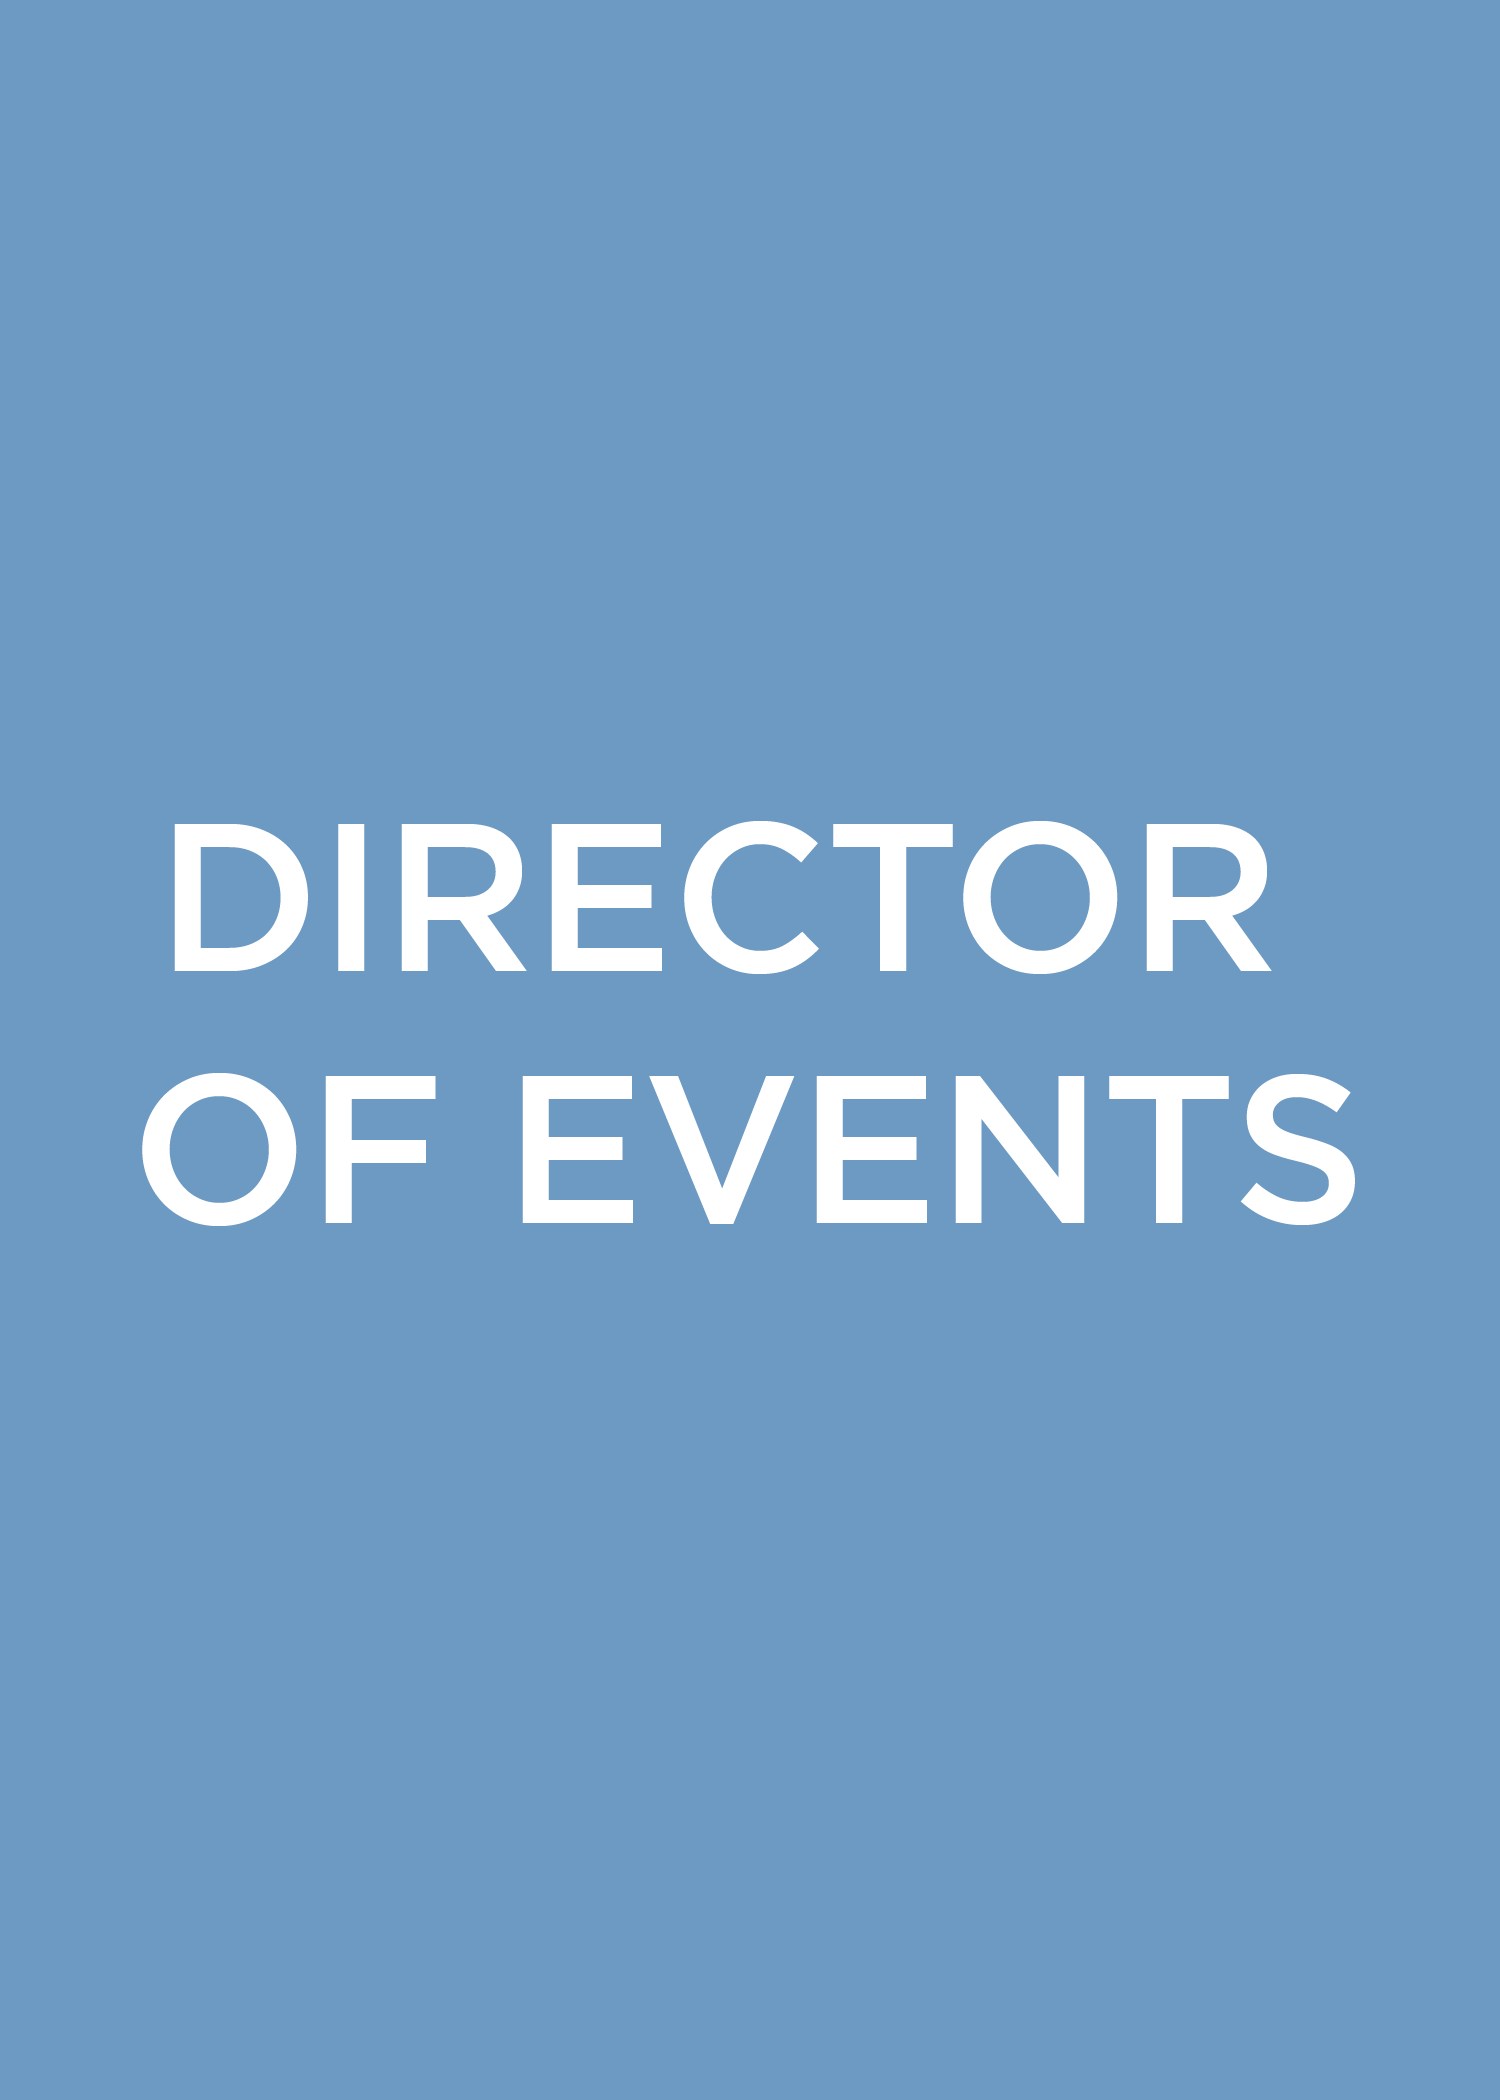 Director of Events